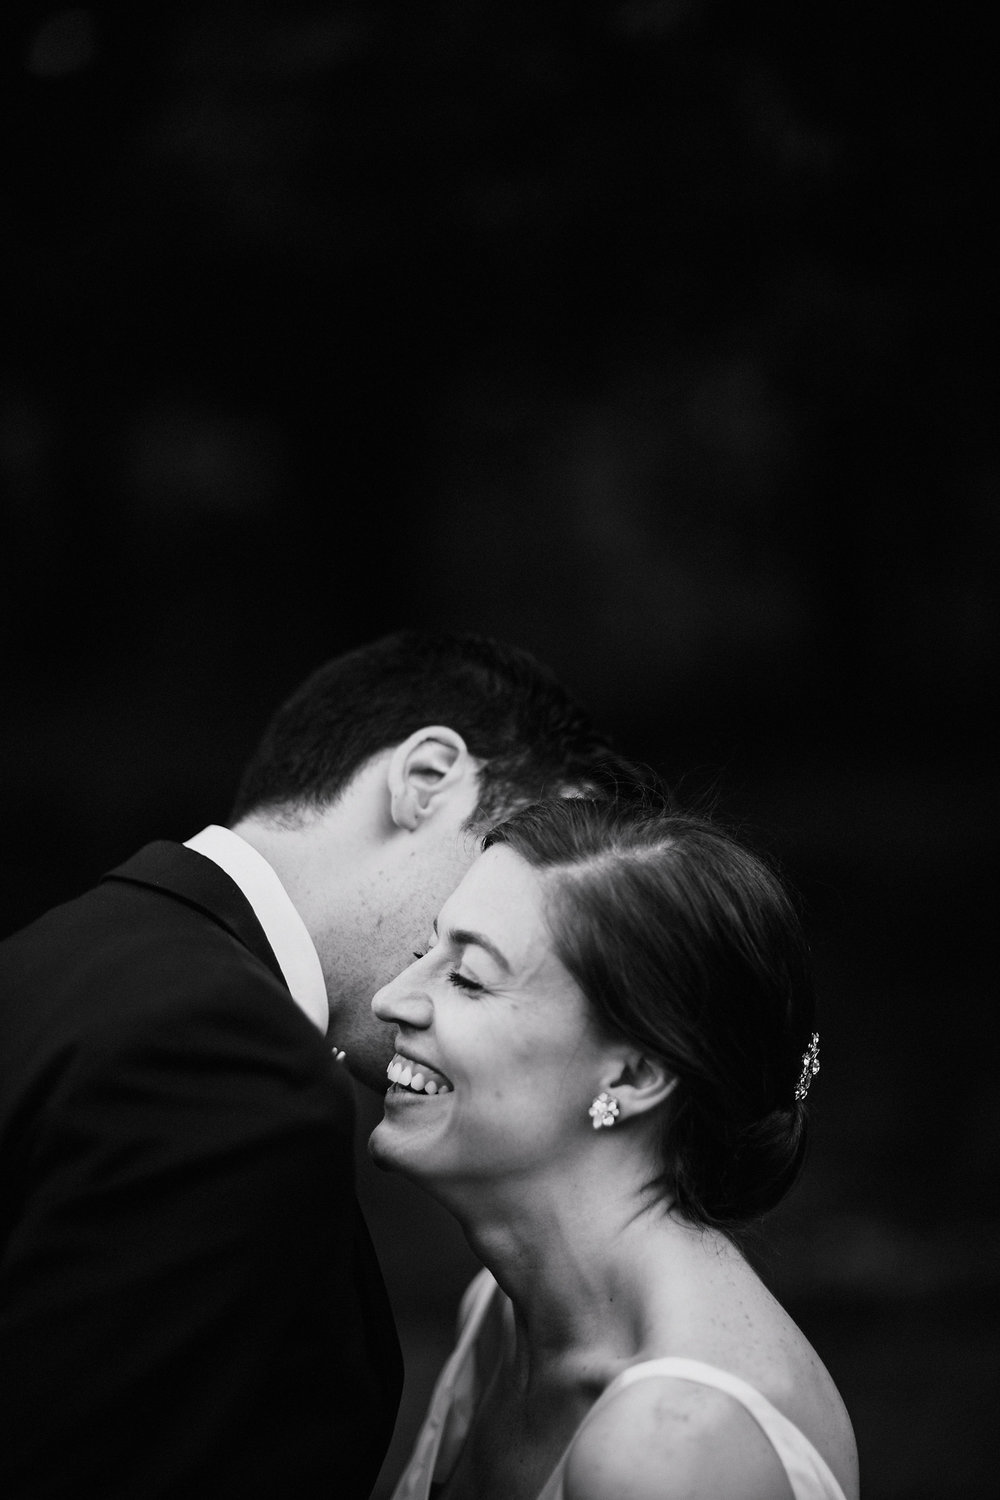 102_Chicago Bridgeport Art Center Wedding_Kindling Wedding Photography.JPG